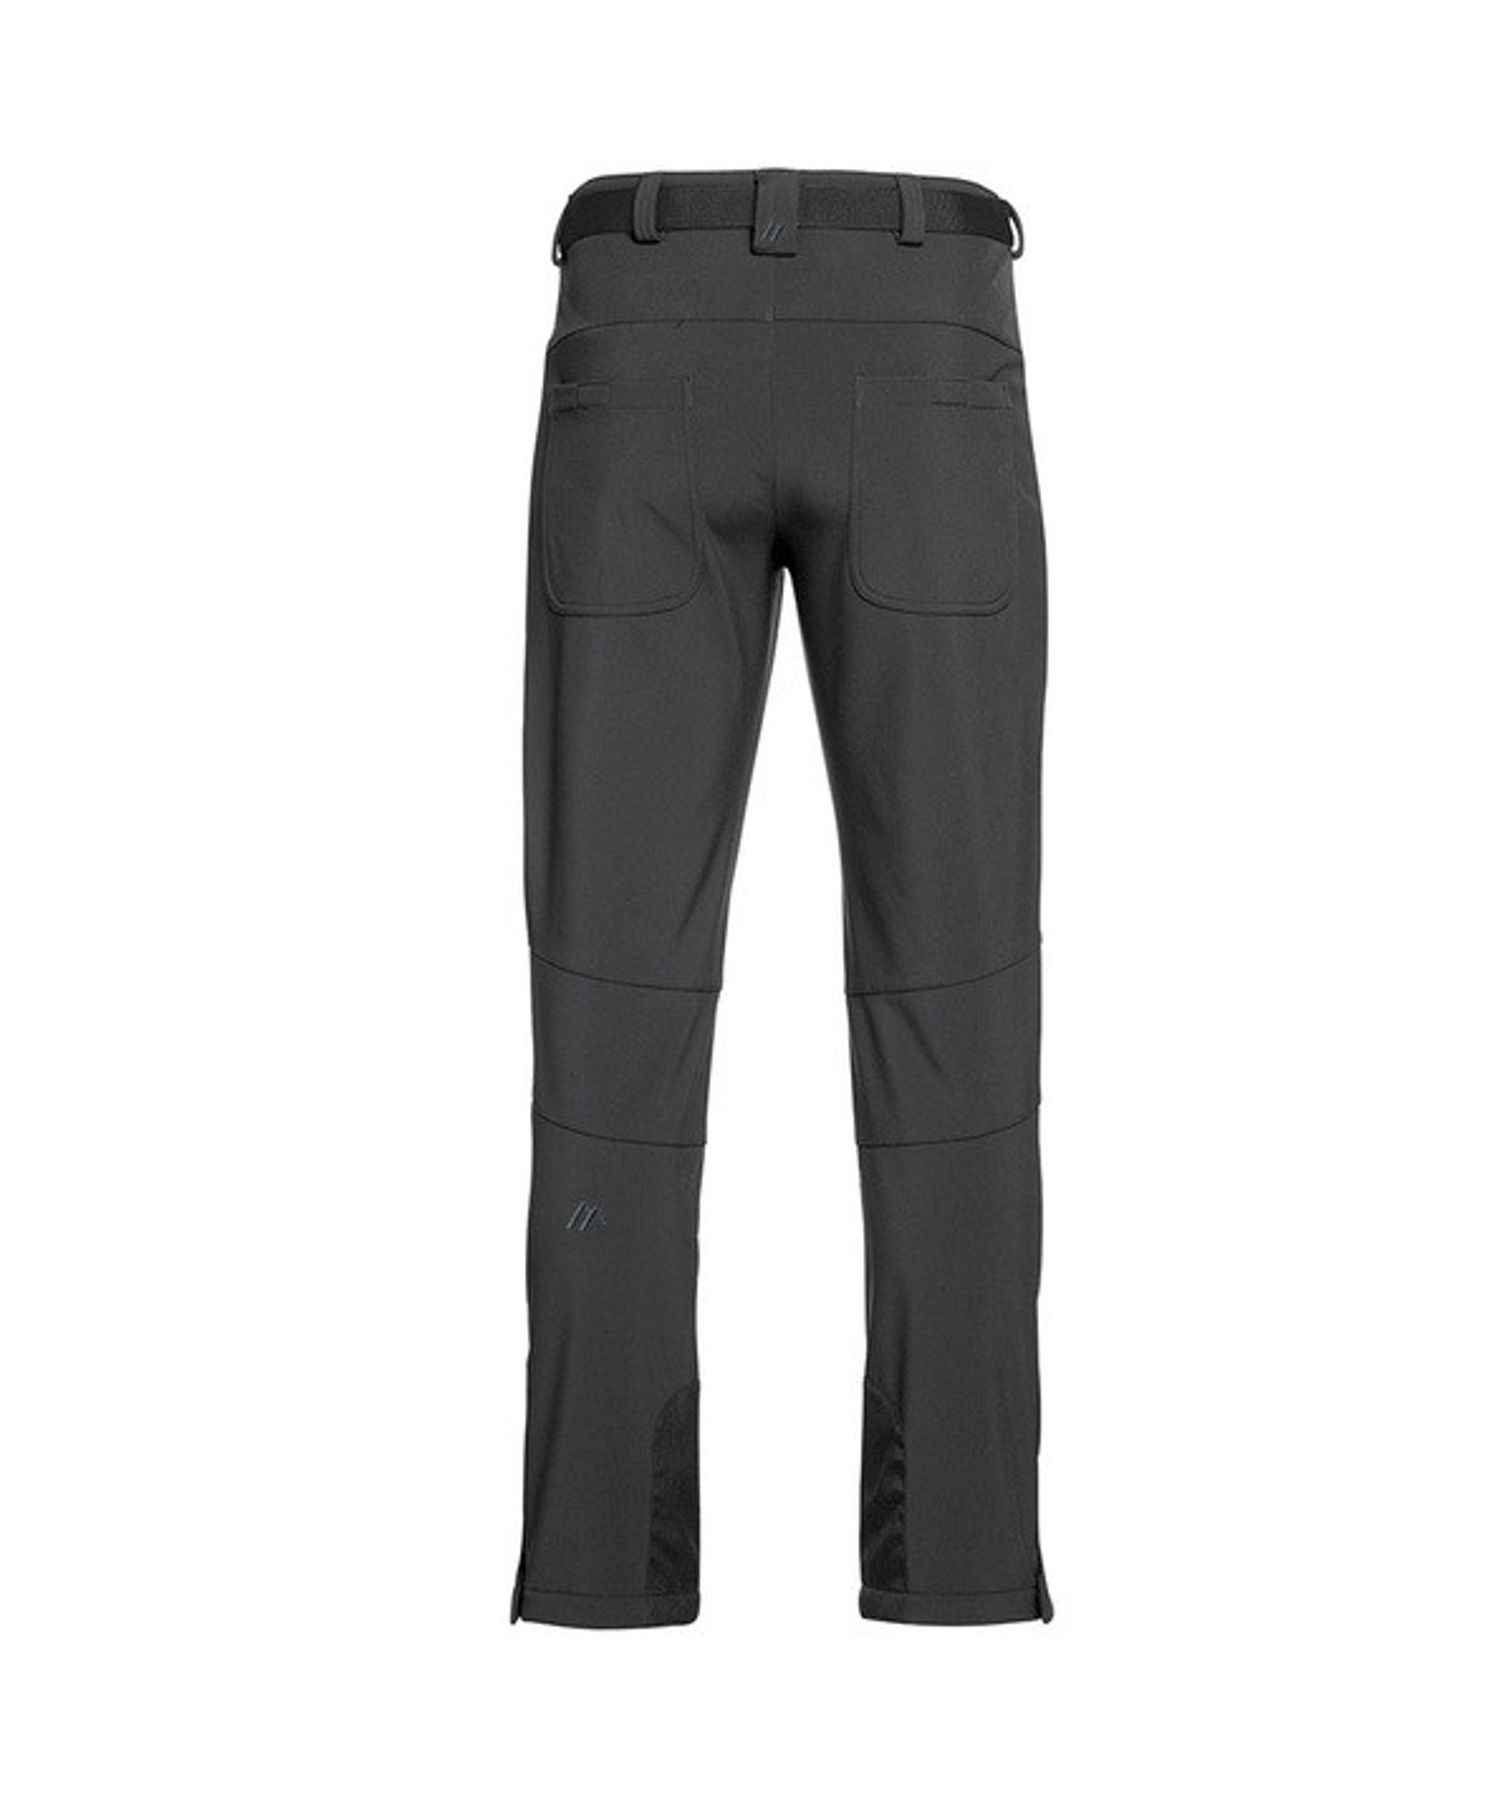 Maier Sports- Herren Funktionelle Softshell Touren - und Wanderhose in Black Artikel Tech Pants M (136008) – Bild 2